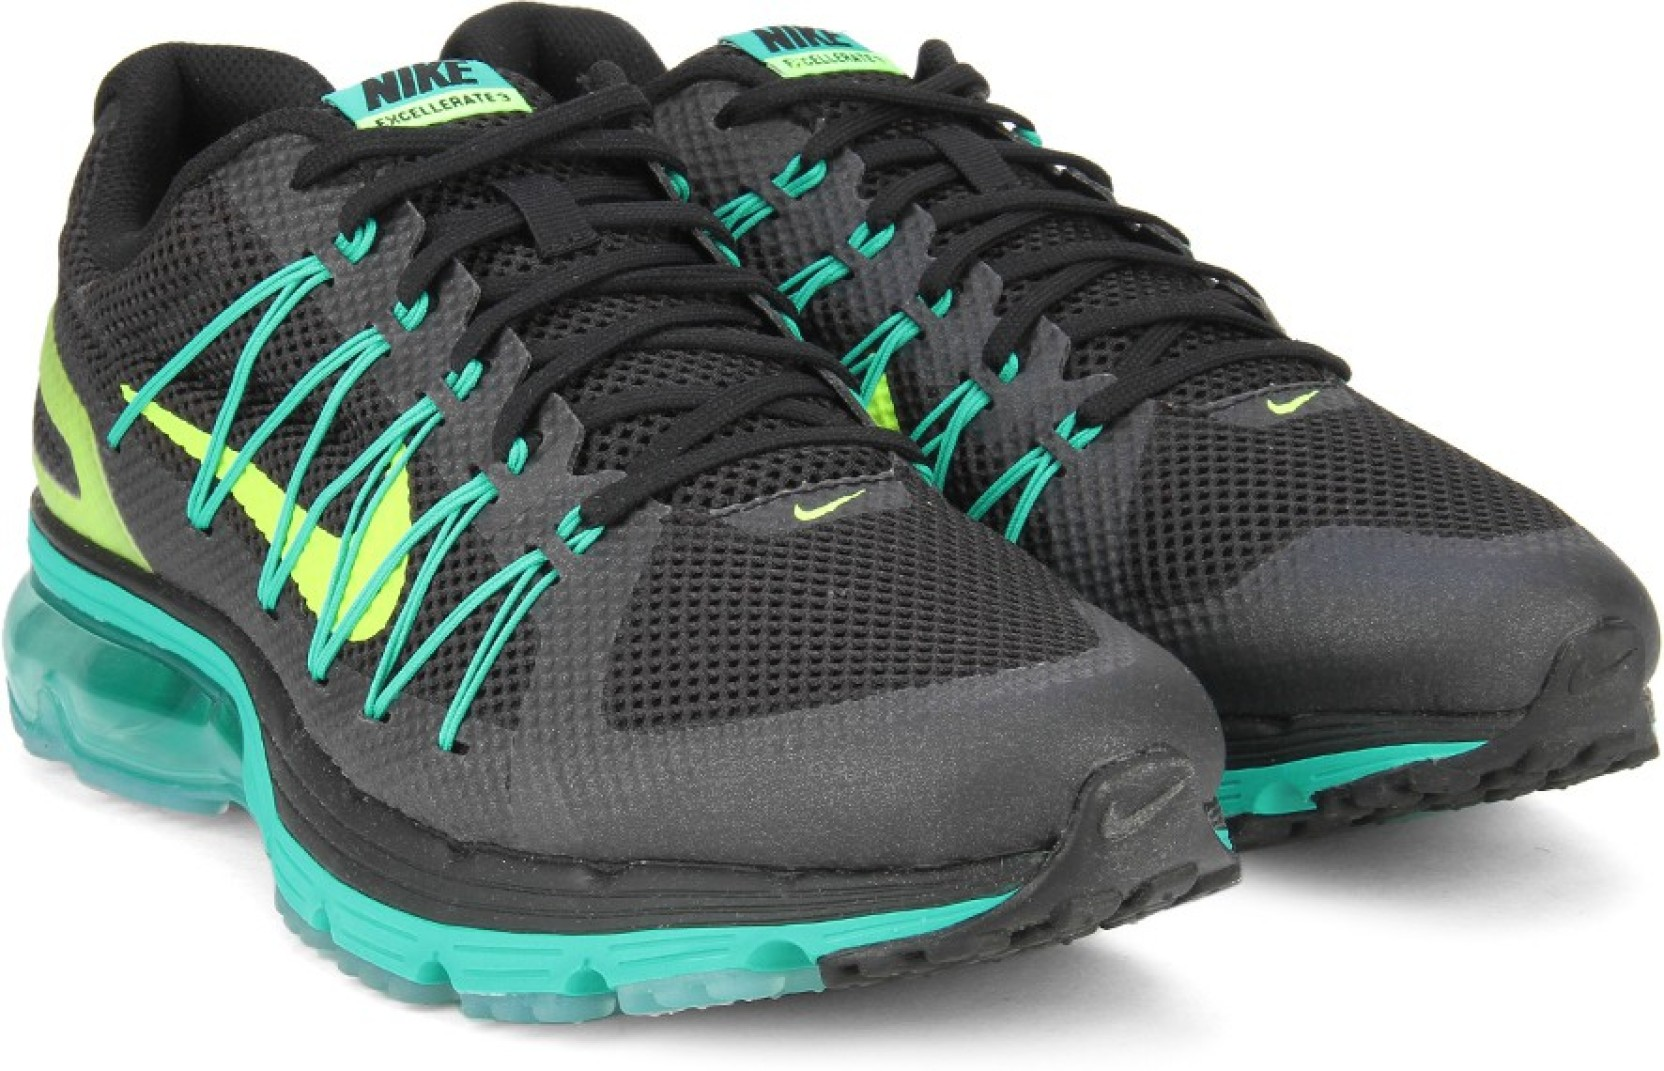 separation shoes 743d4 fec70 ... new arrivals nike air max excellerate 3 running shoes for men black  green 1326c ee10d ...